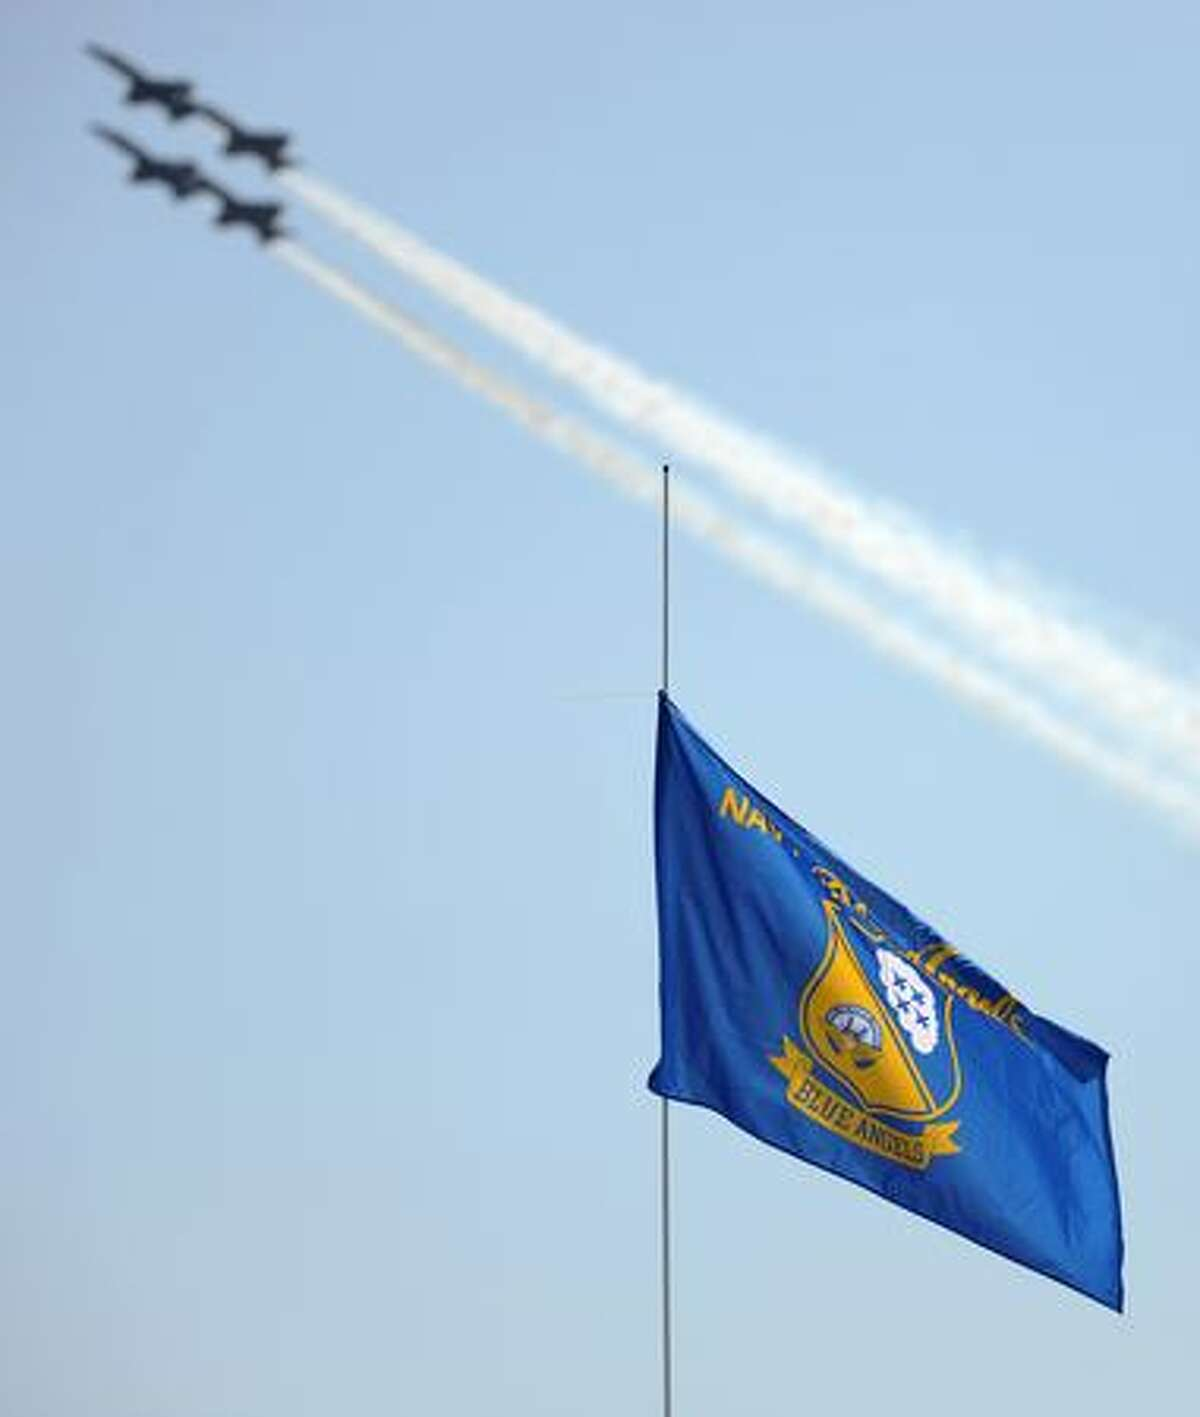 The Blue Angels perform during Seafair 2009.